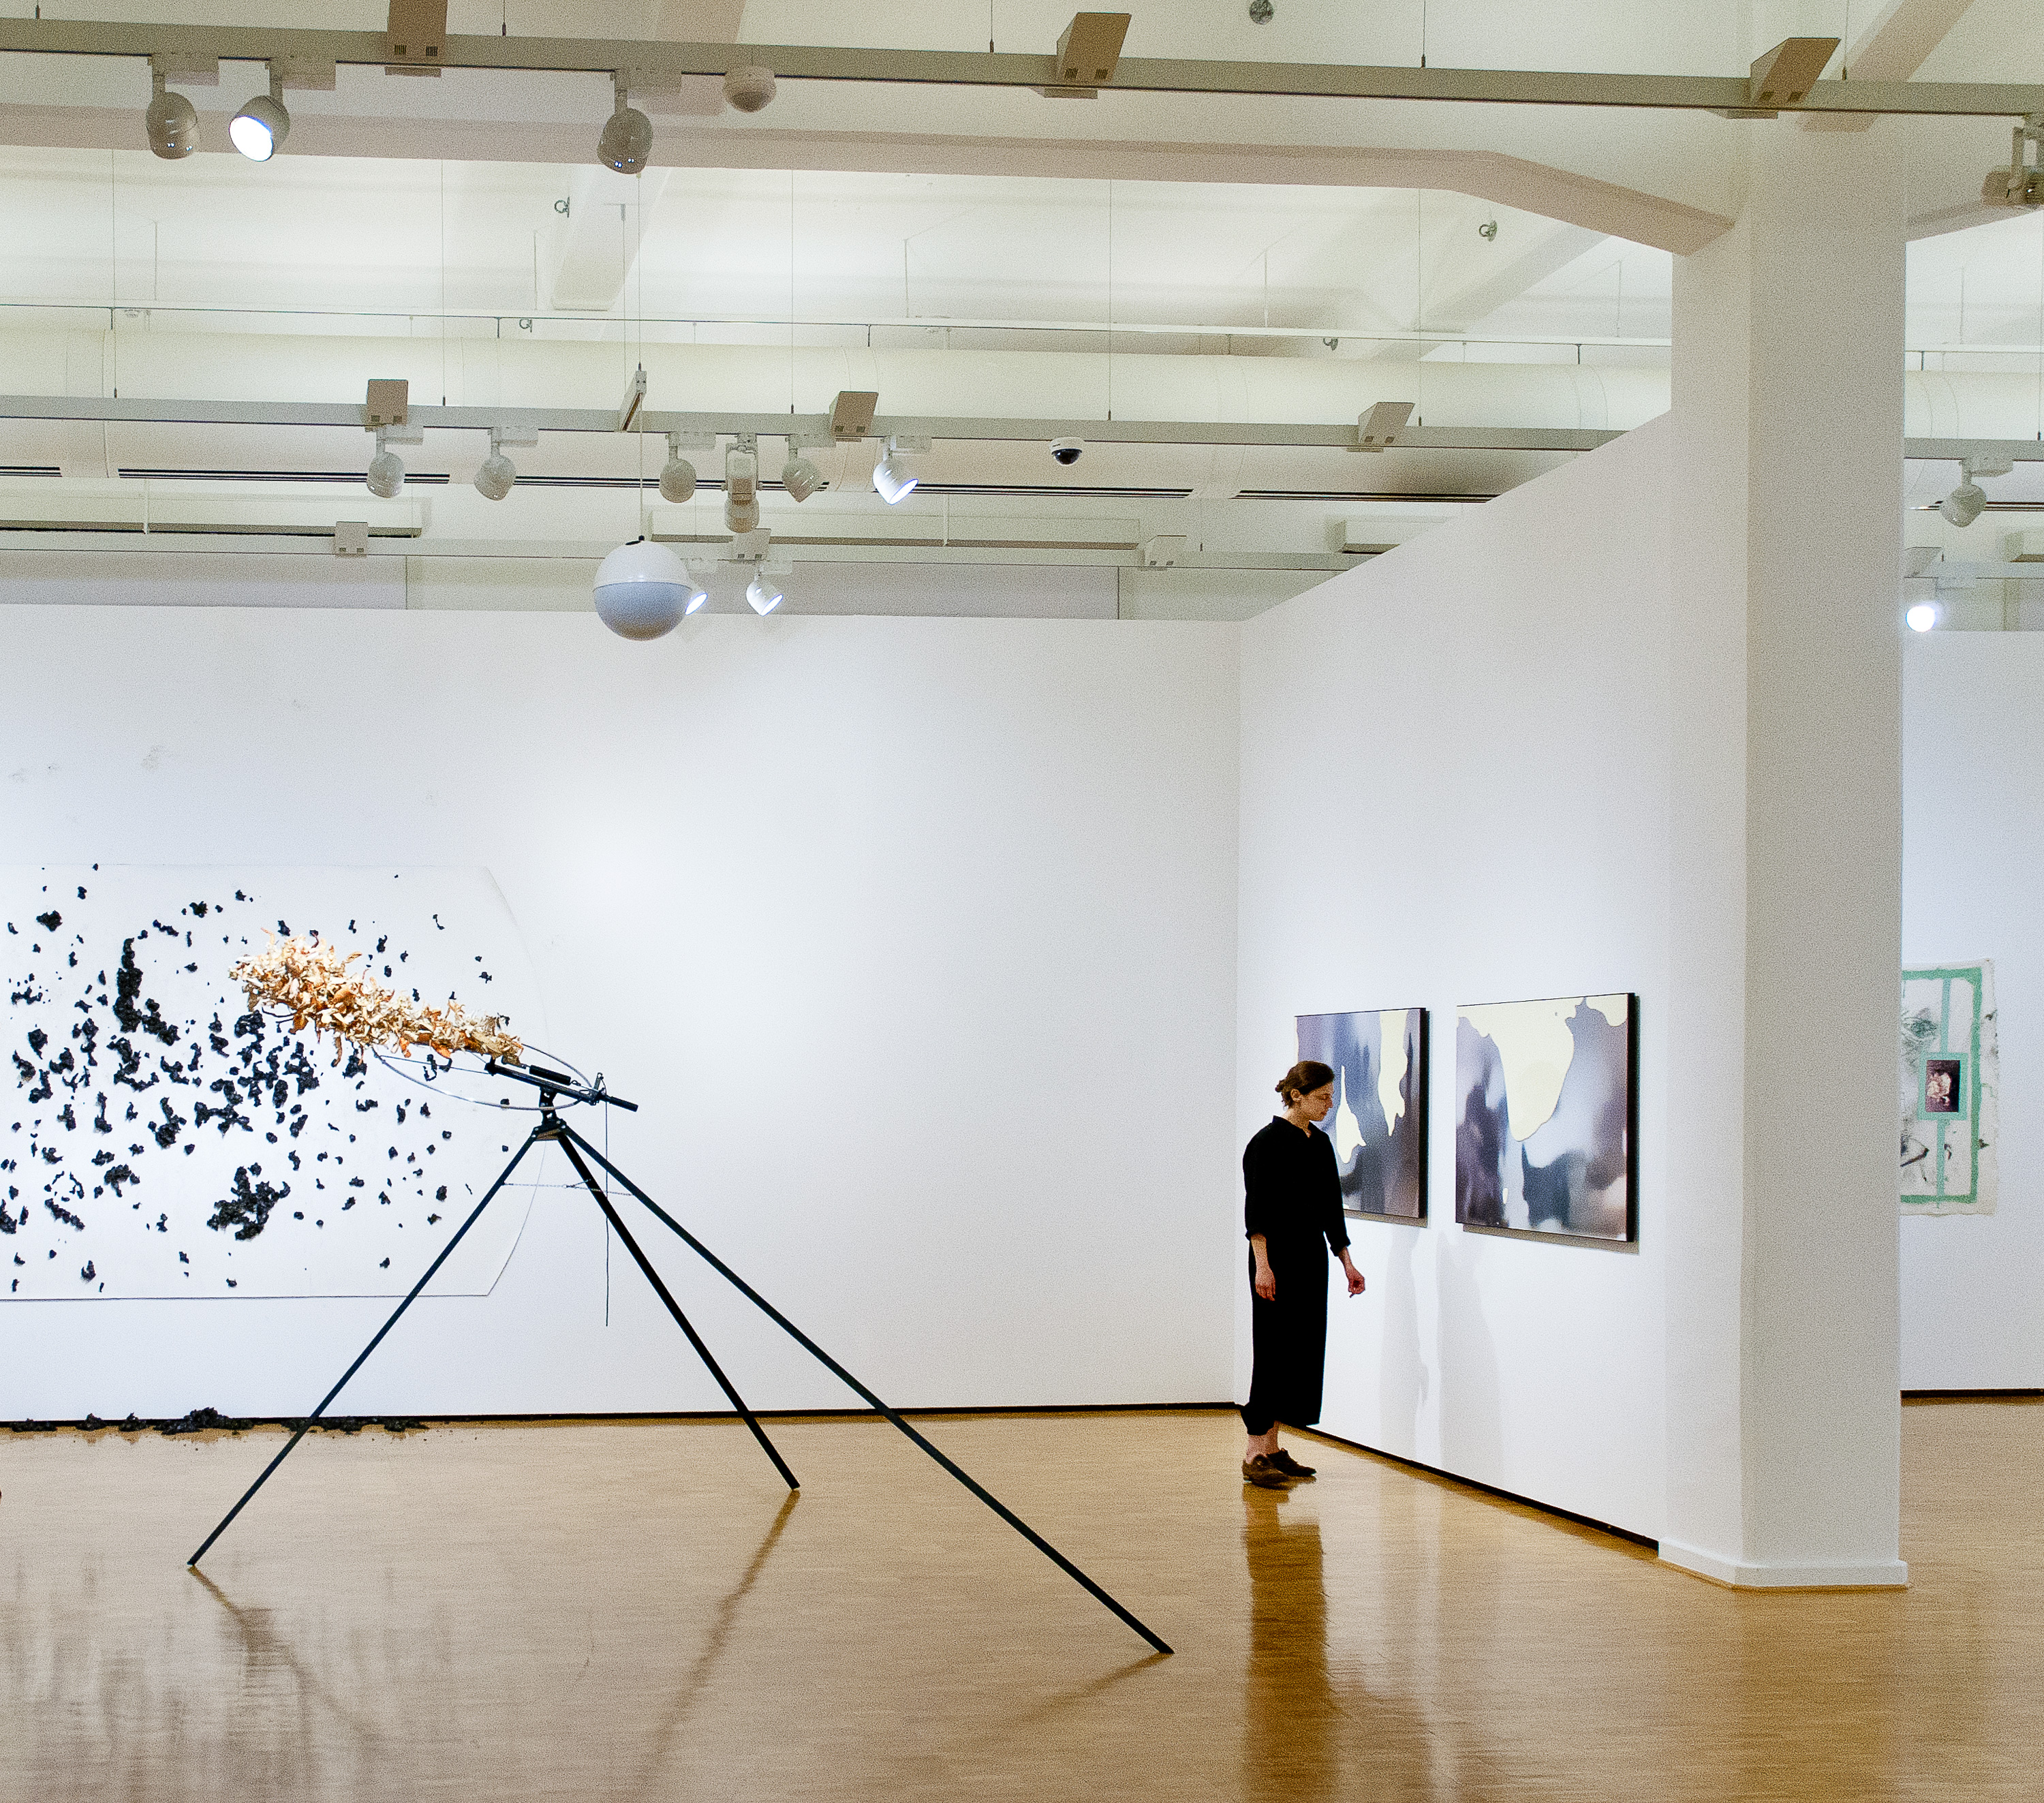 Moskau I & II: Installation view at Kunsthalle der Sparkasse Leipzig together with Renan Ran Harari (left side) in 2014